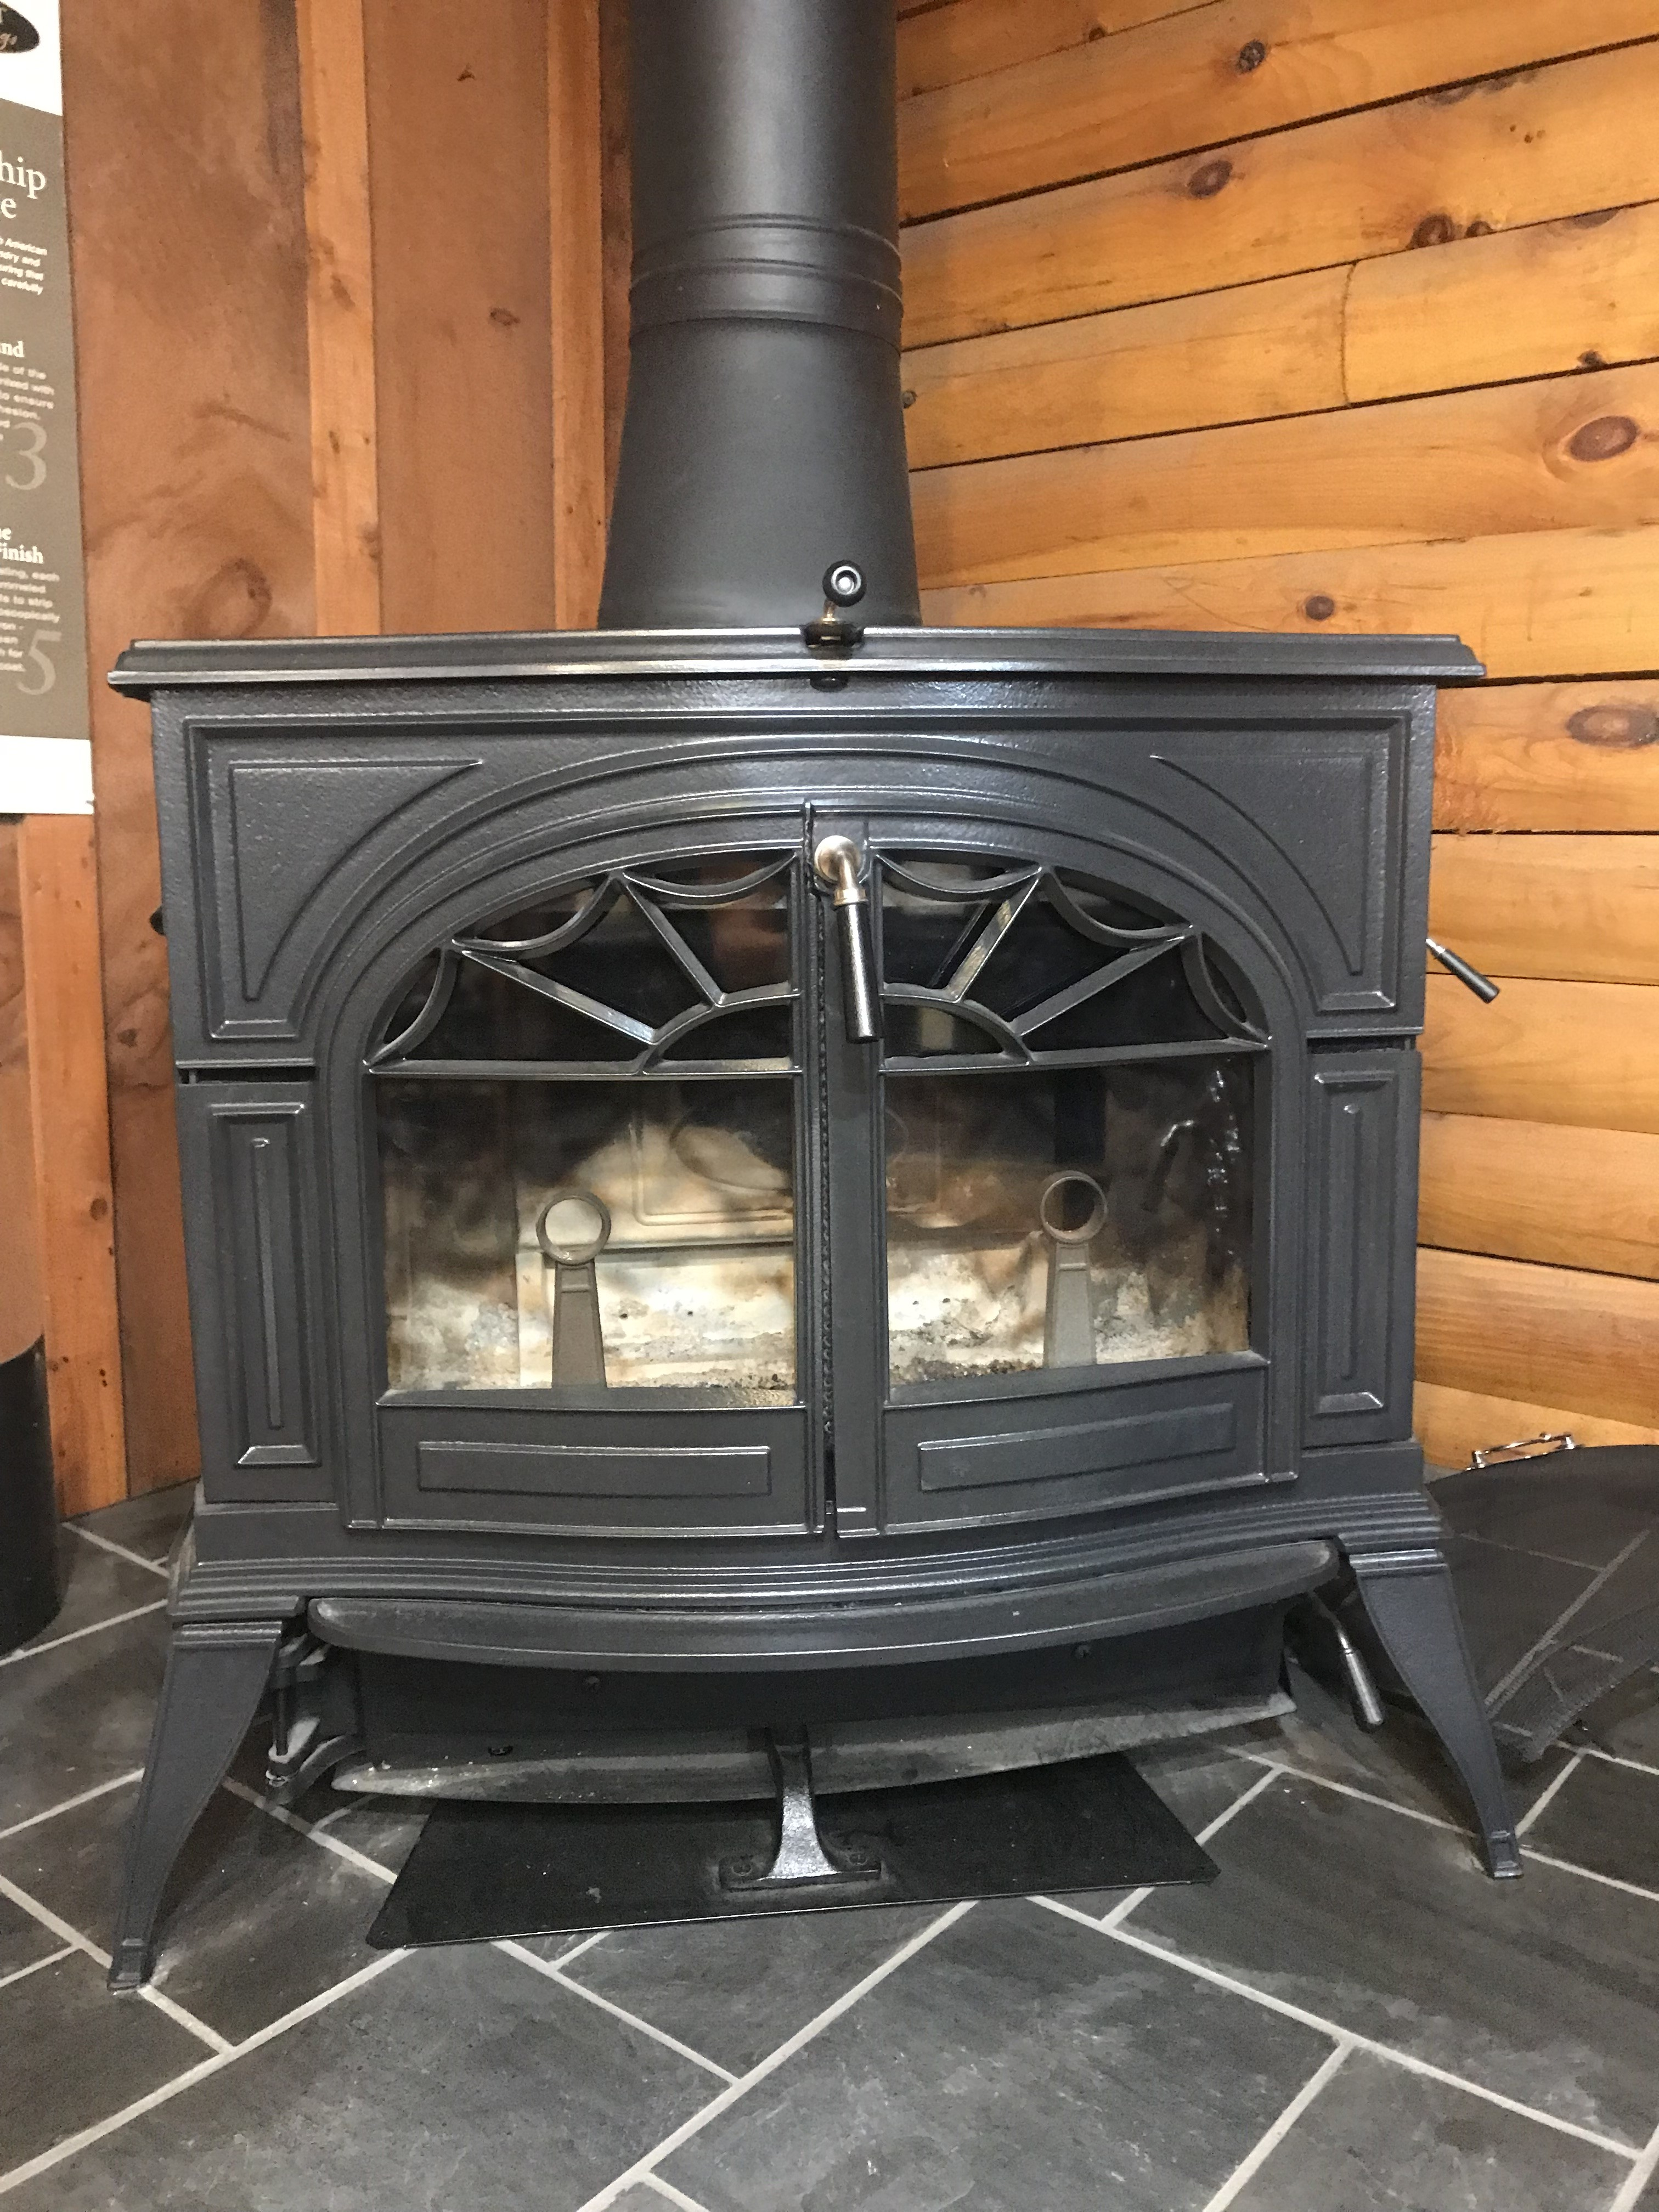 Vermont Castings Defiant Wood Stove - Demo